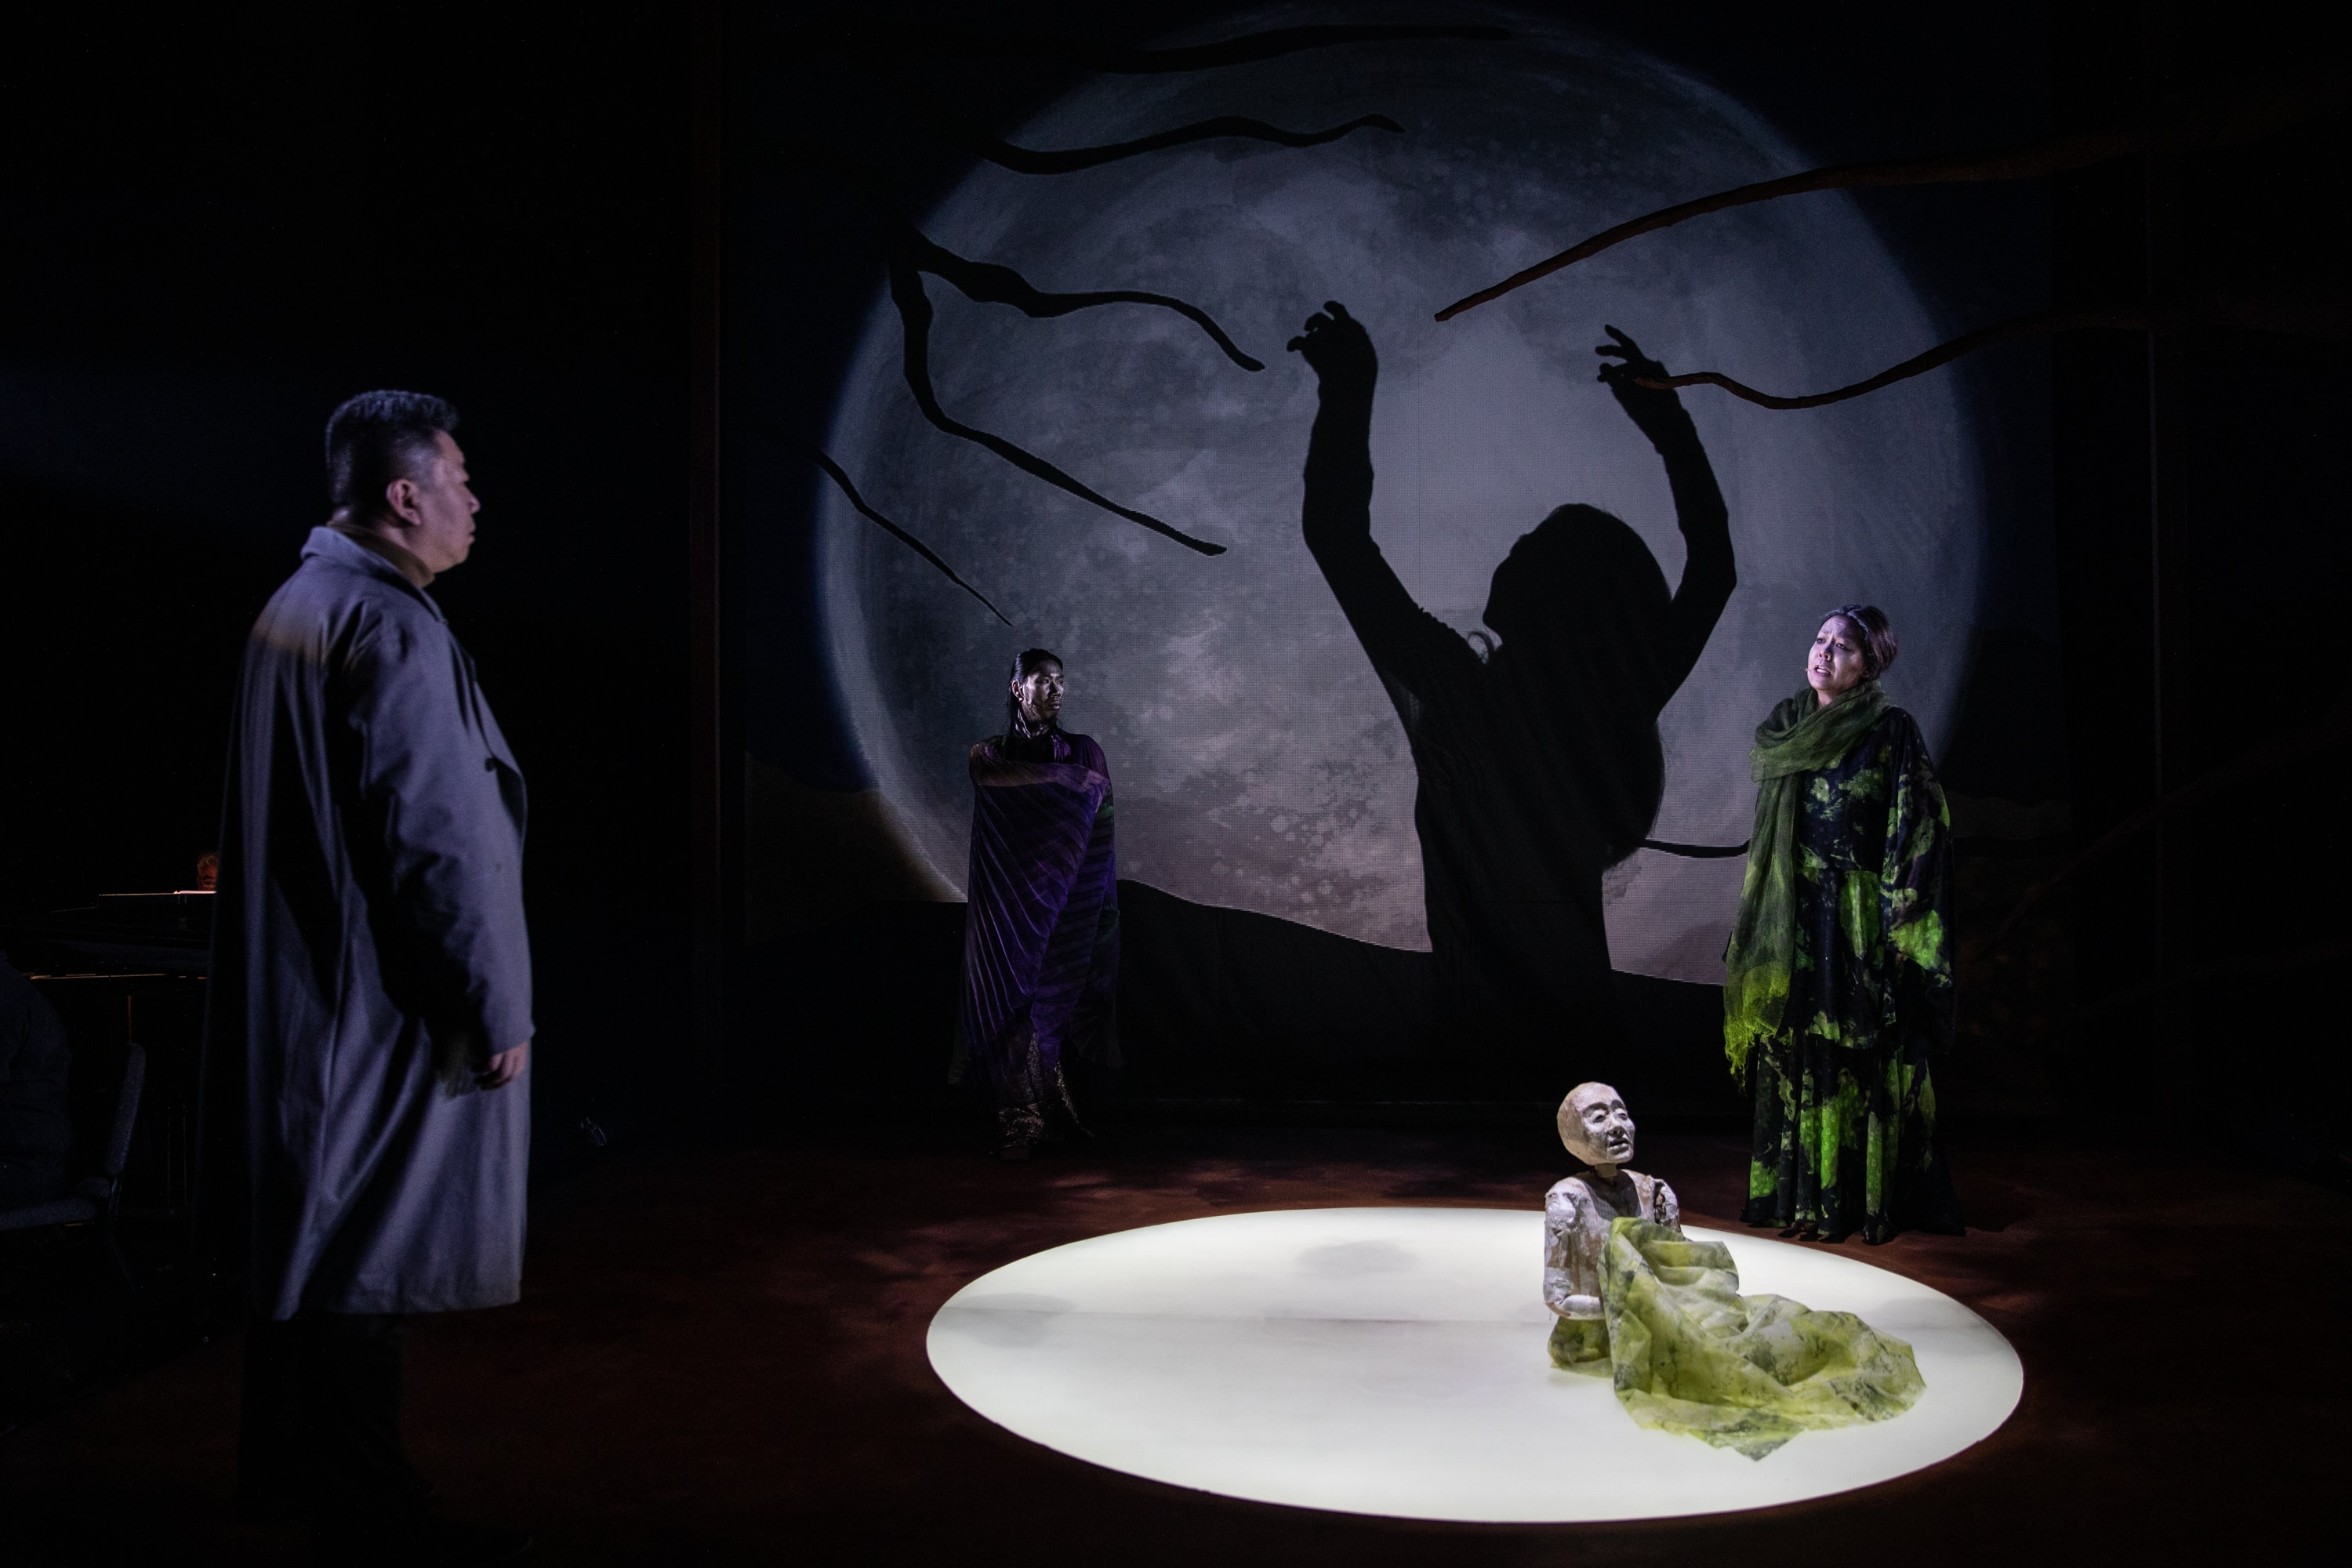 Wei Wu, Juecheng Chen, Takemi Kitamura, and Nina Yoshida Nelsen in <i>Blood Moon</i>. Photo: Maria Baranova